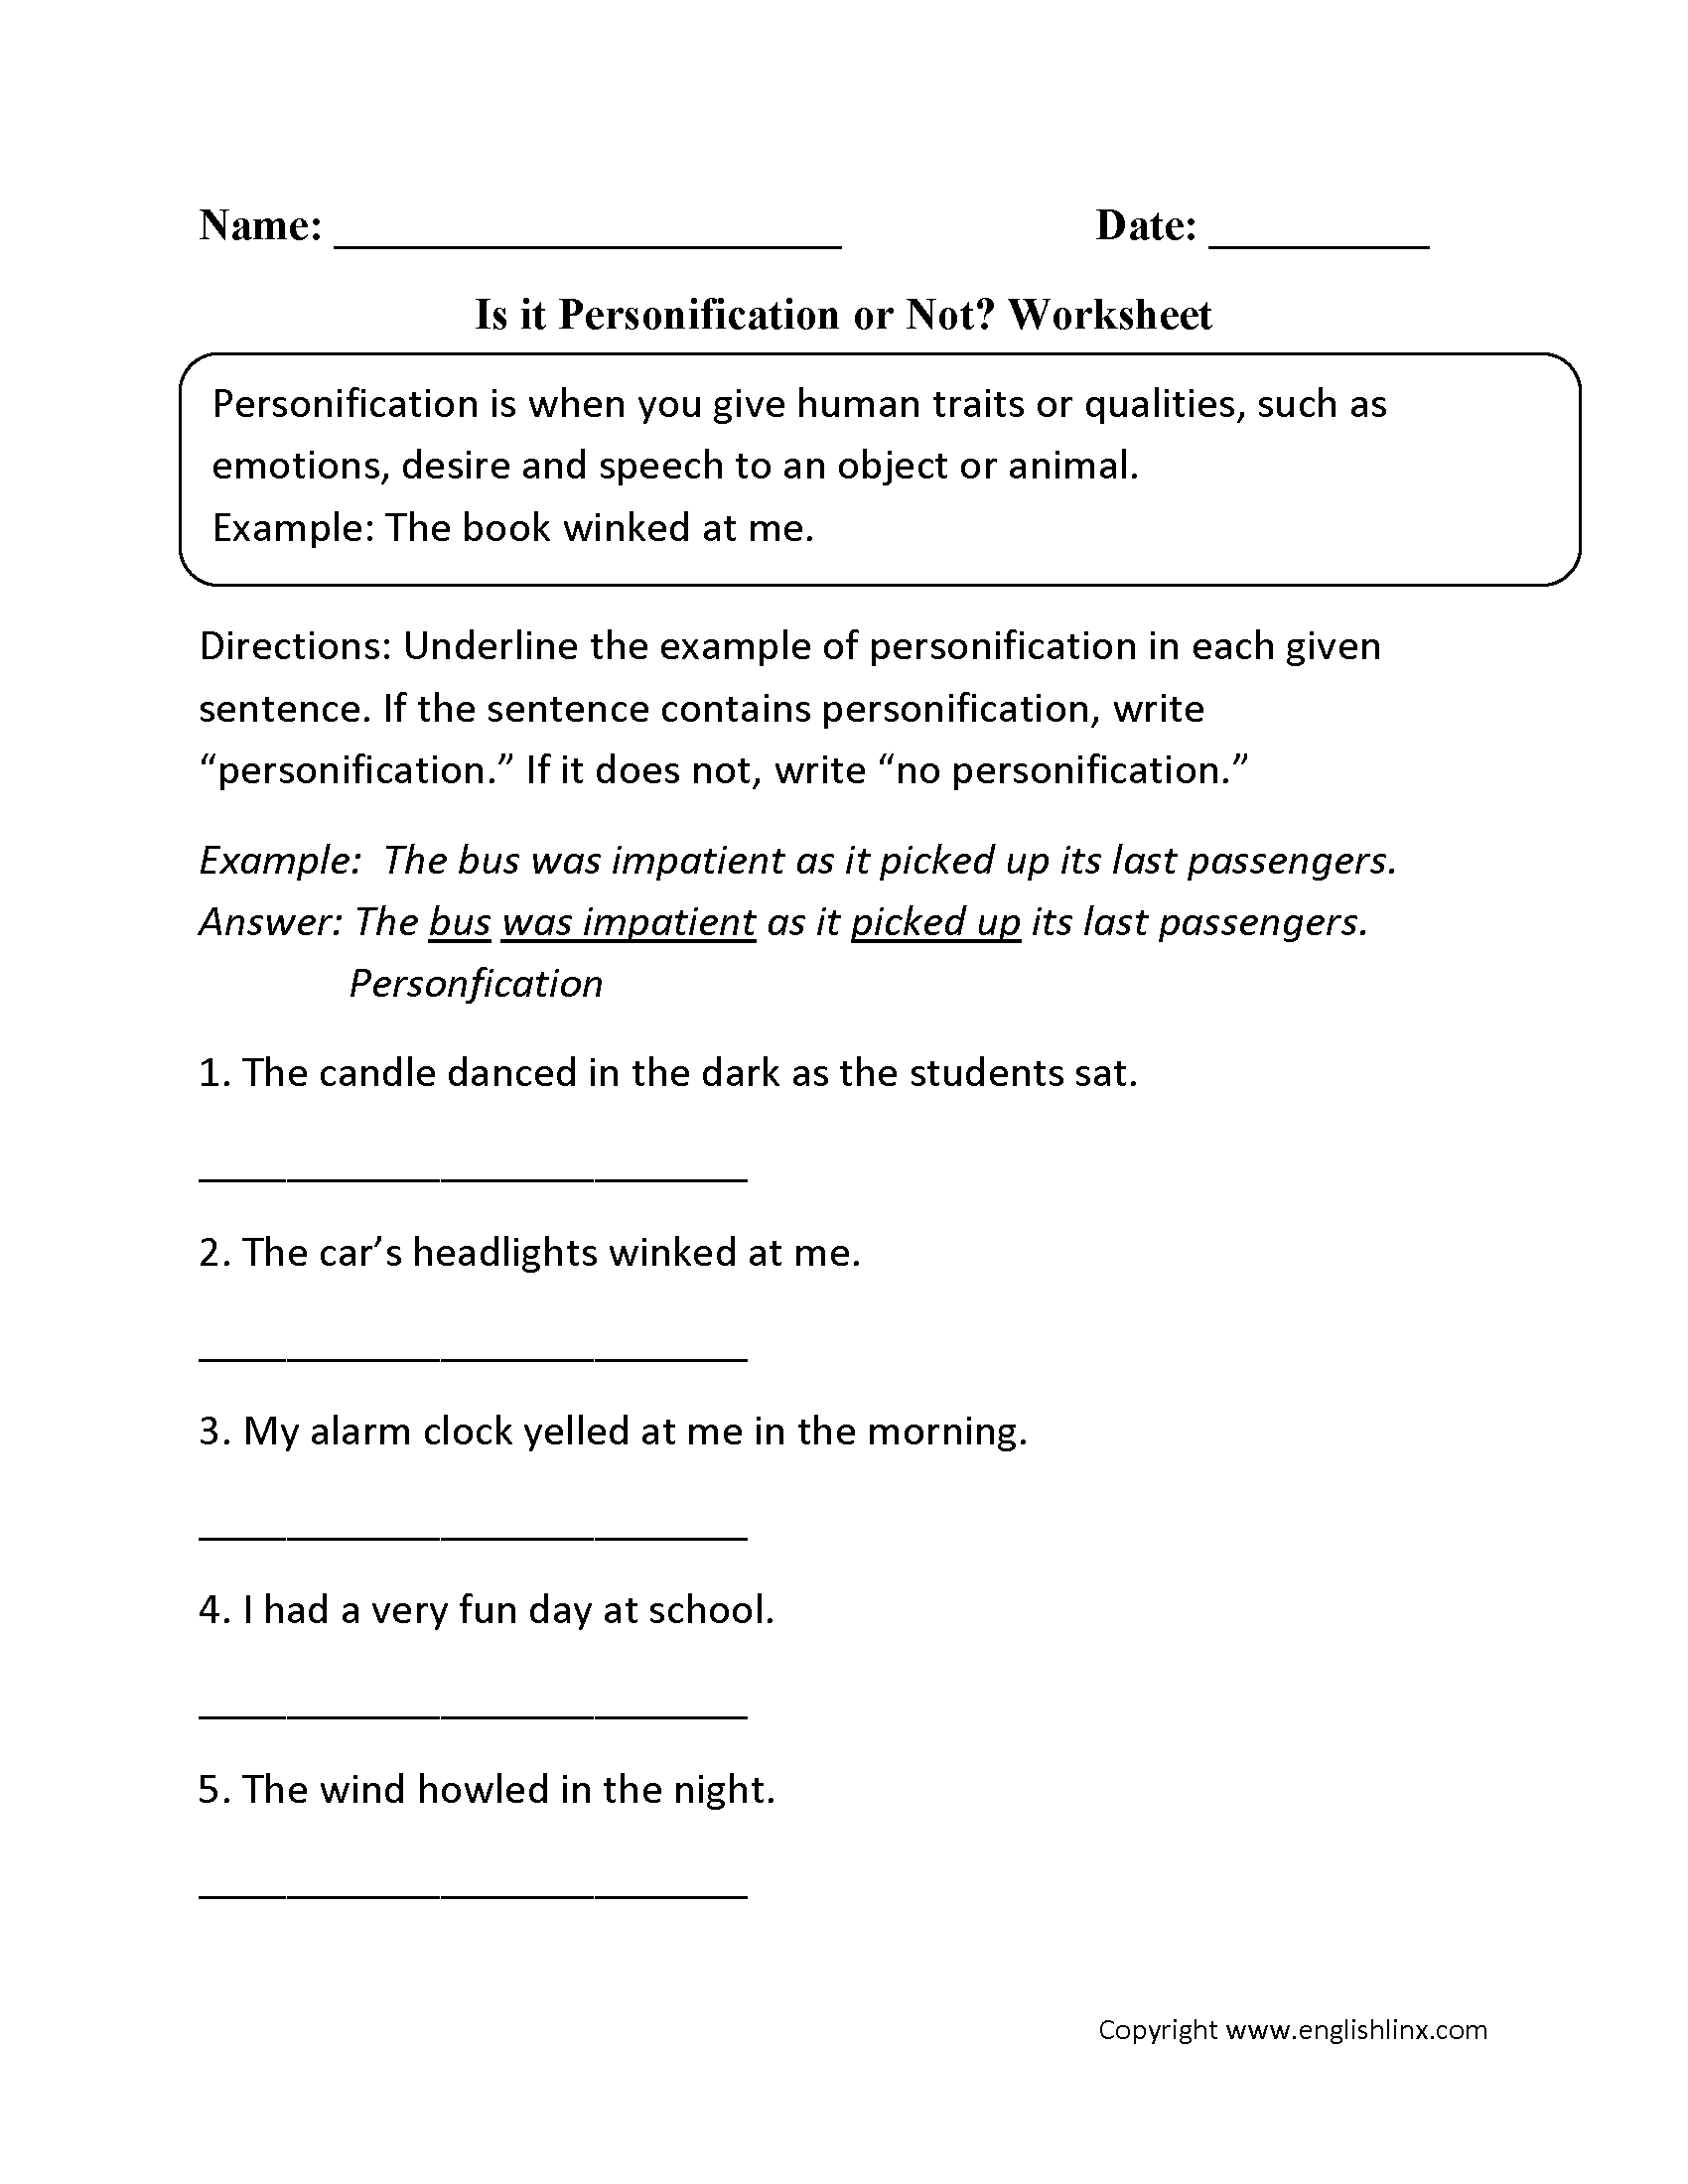 Figurative Language Worksheets | Personification Worksheets | Printable Personification Worksheets